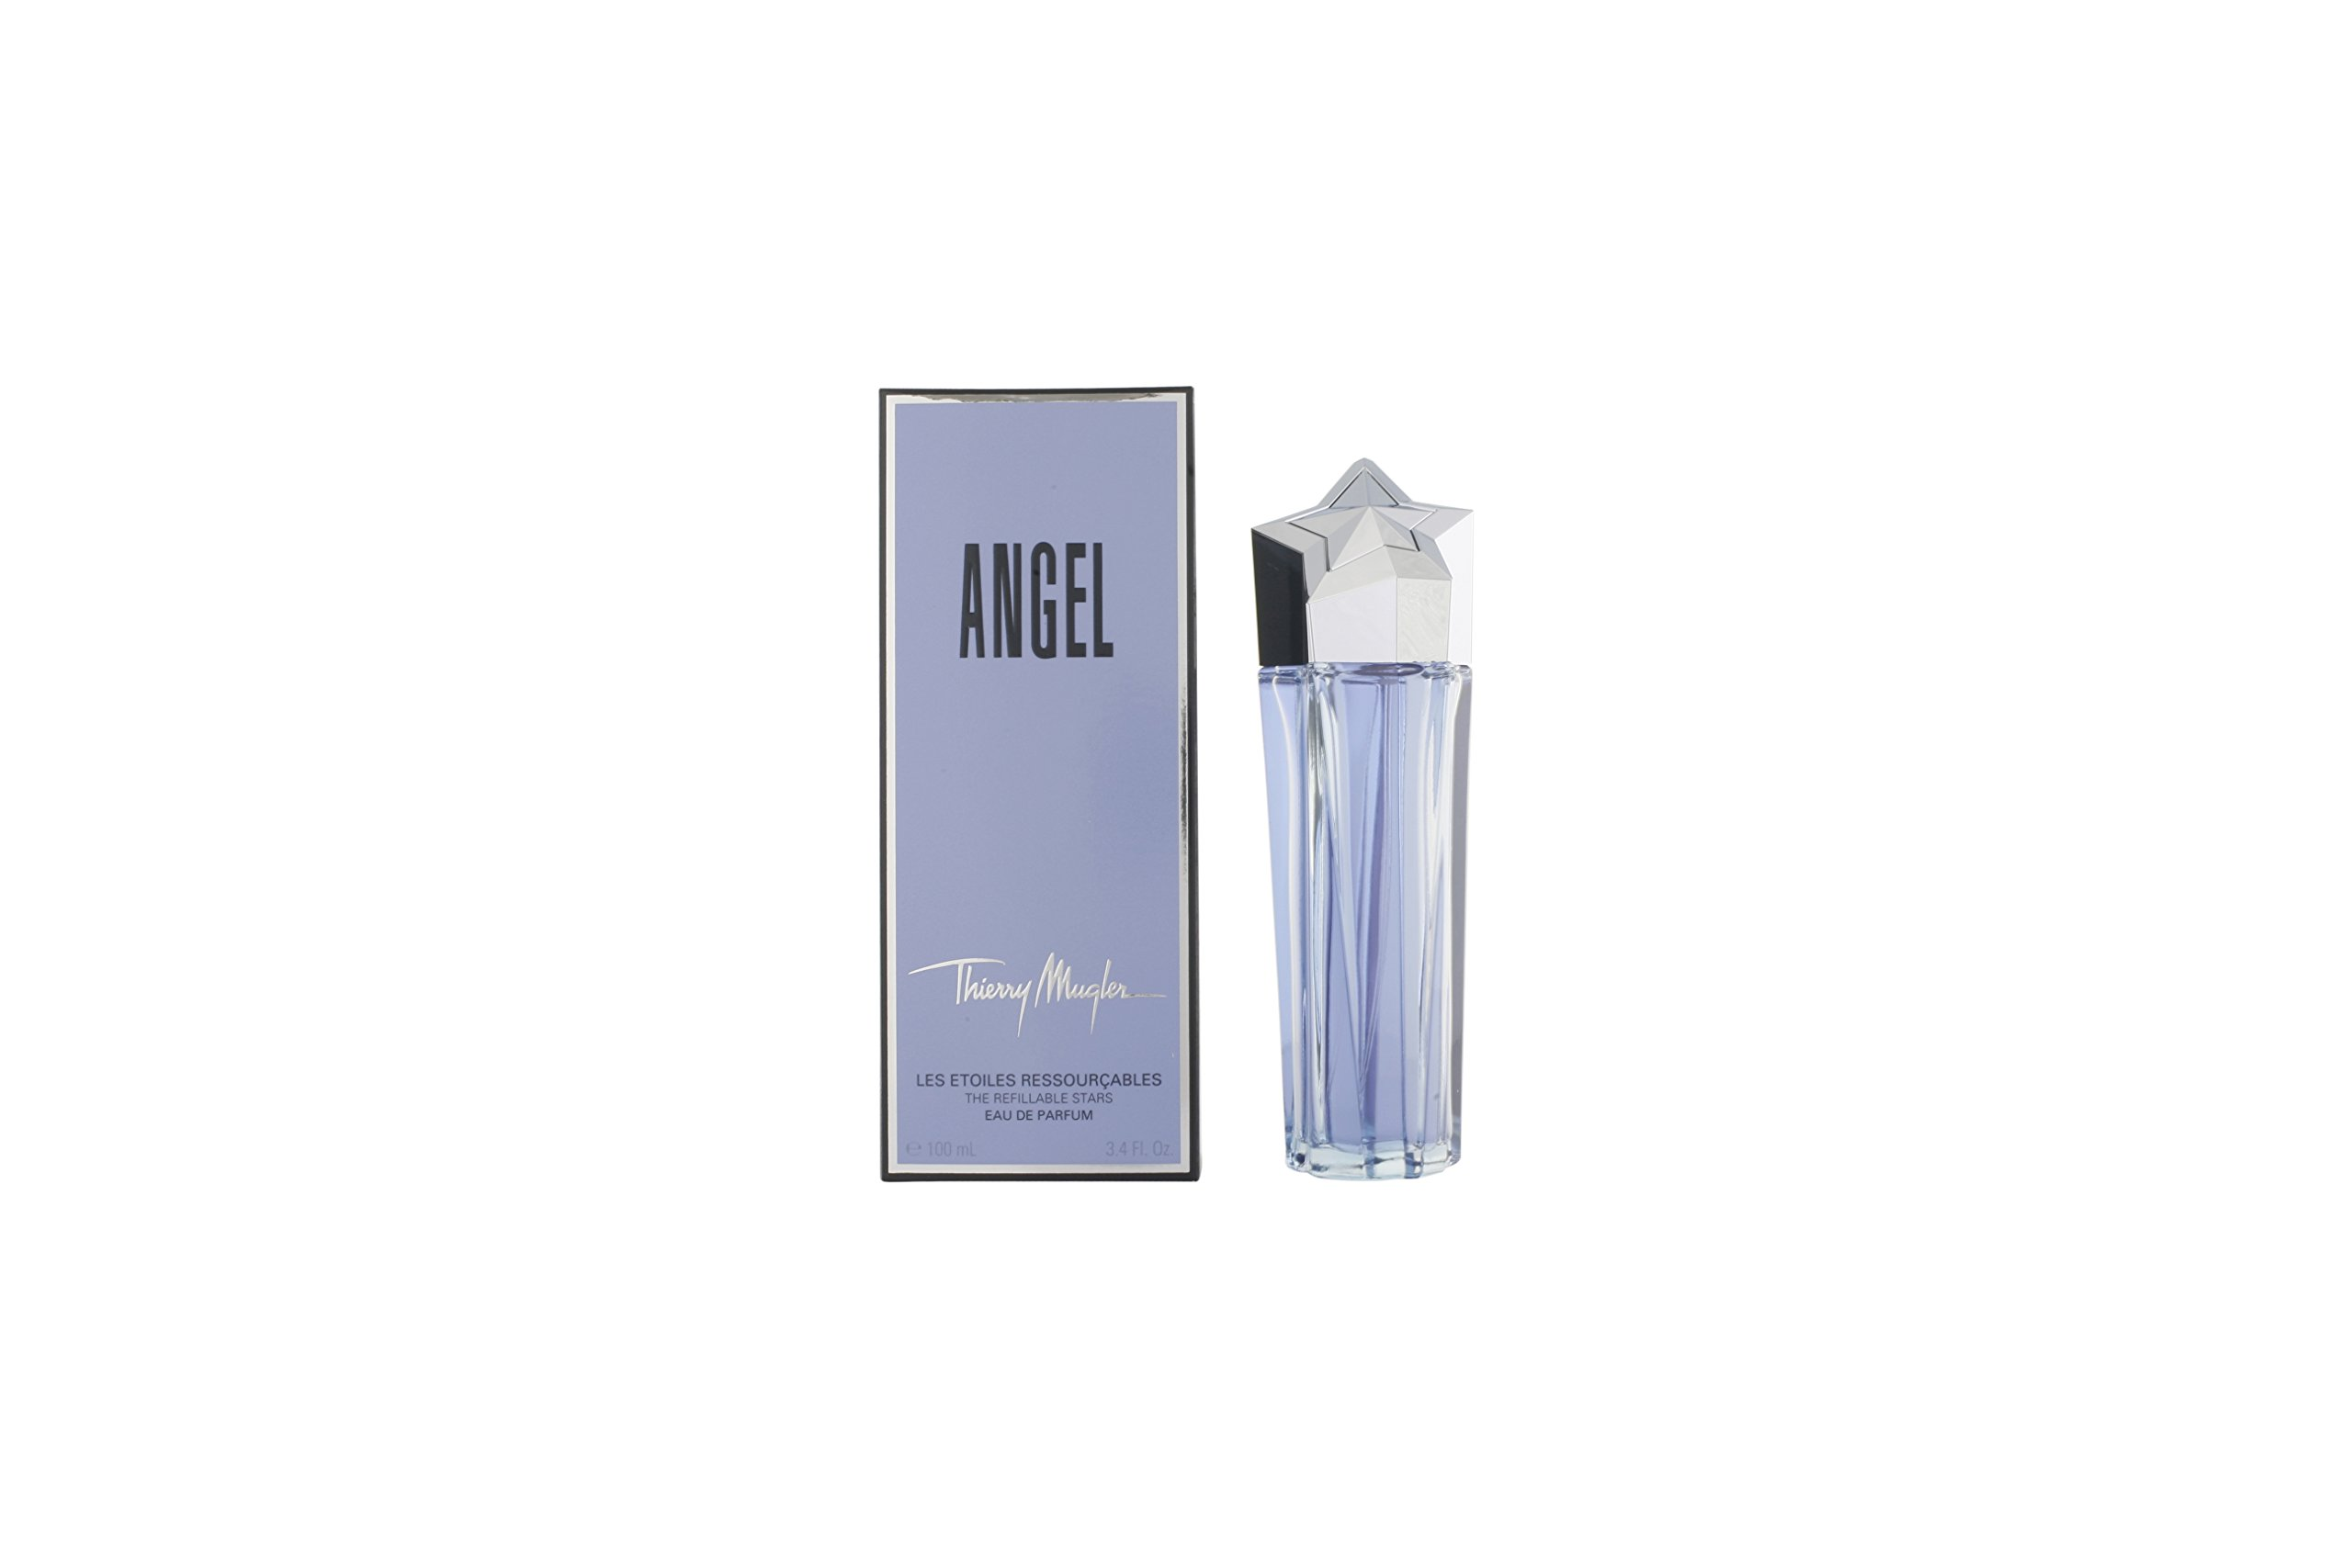 Angel By Thierry Mugler For Women. Eau De Parfum Spray Refillable 3.4 oz (Packaging May Vary) by Thierry Mugler